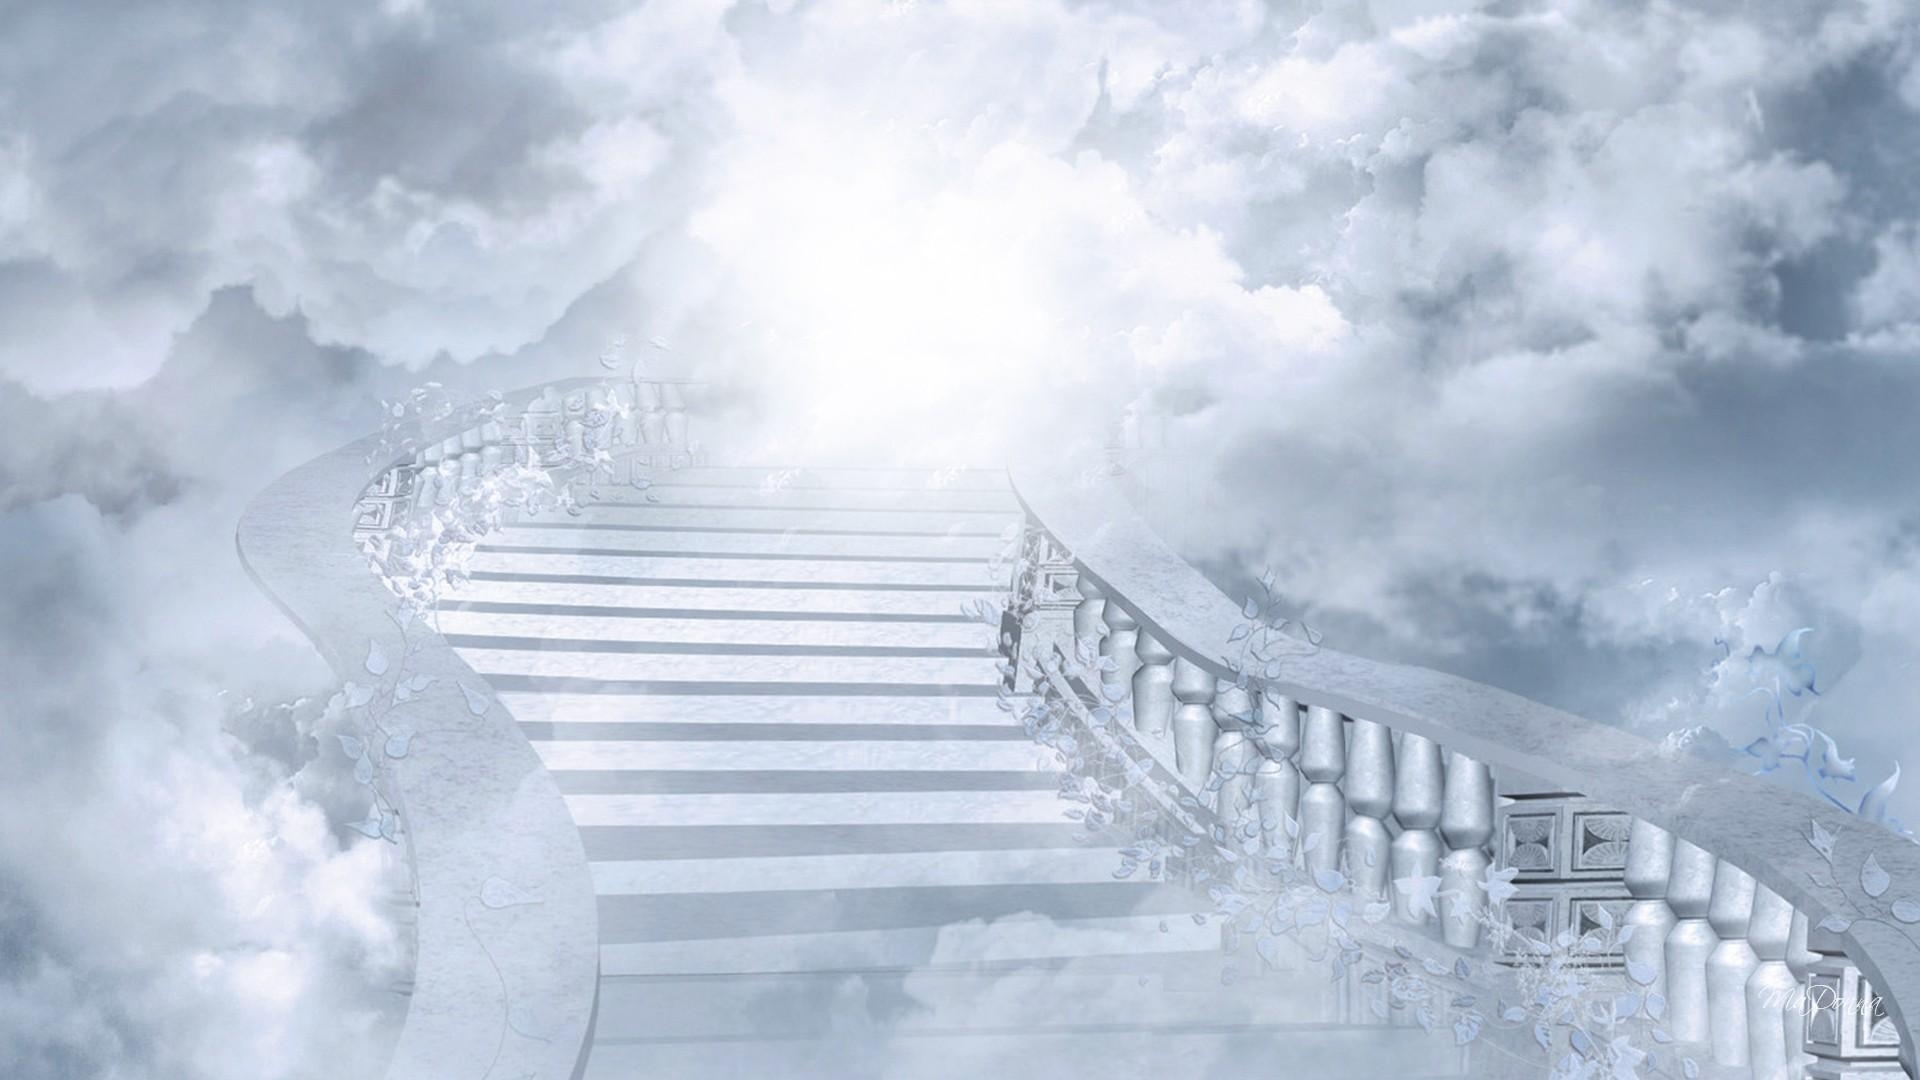 heaven wallpapers, top 46 heaven backgrounds, #rig34 special wallpapers